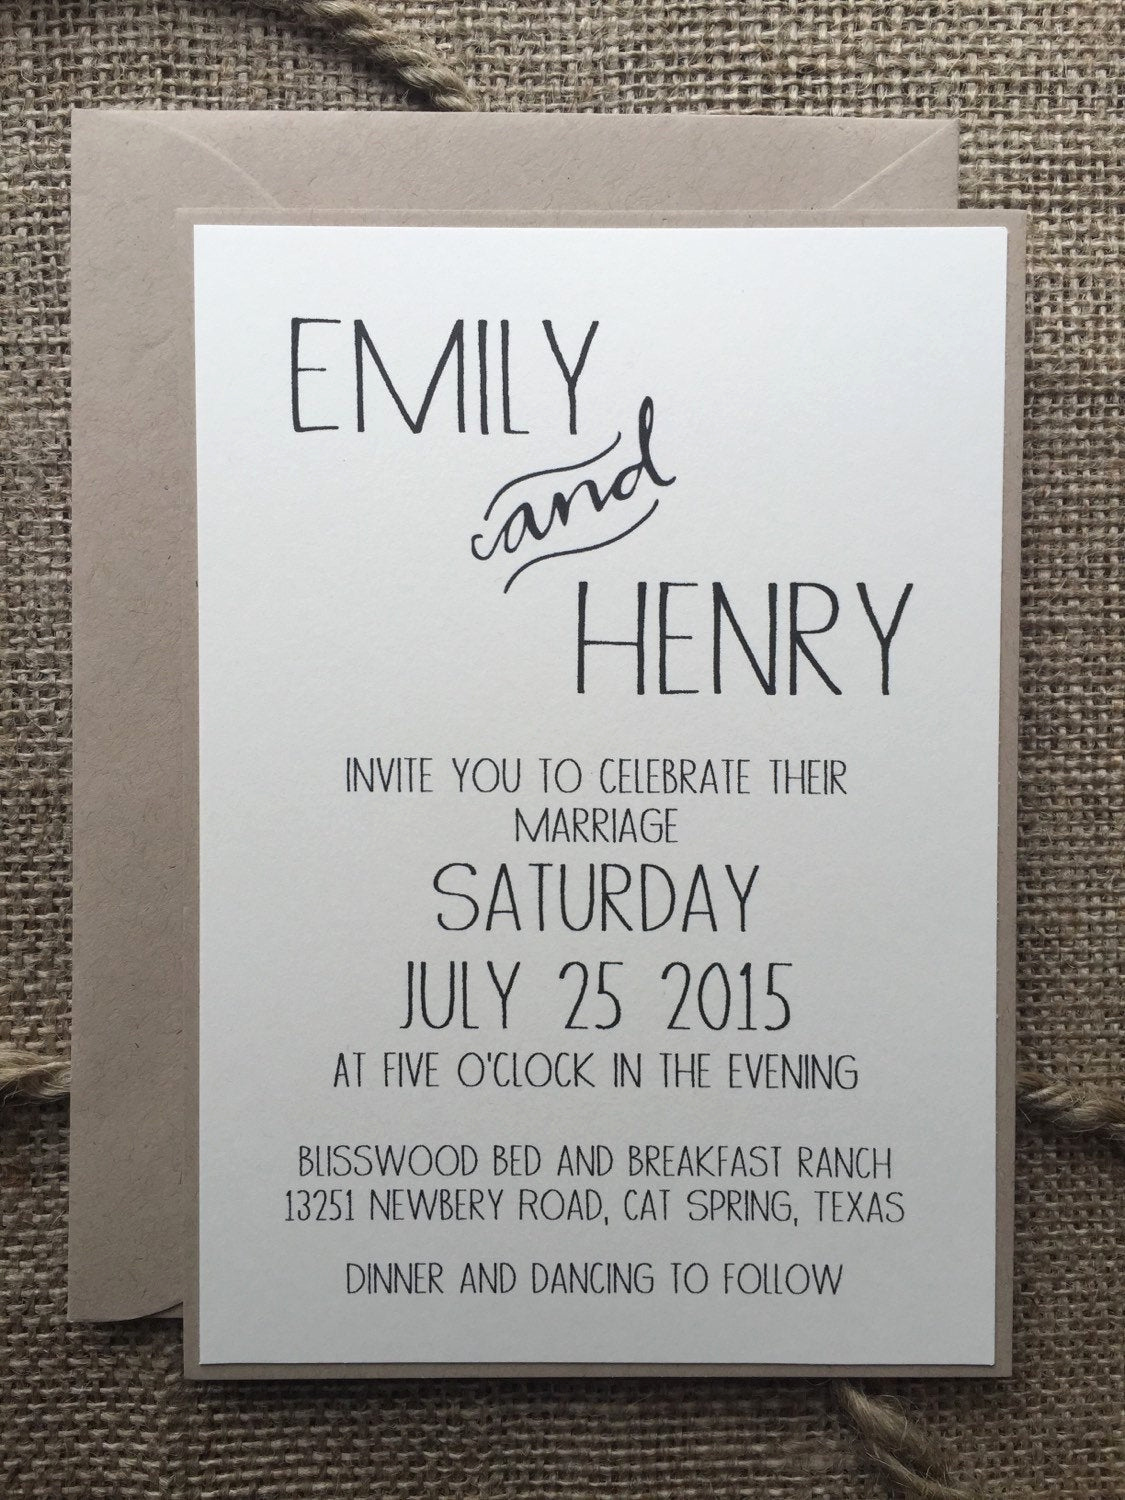 Modern Wedding Invitation Wording Unique Rustic Modern Wedding Invitation Elegant & Simple